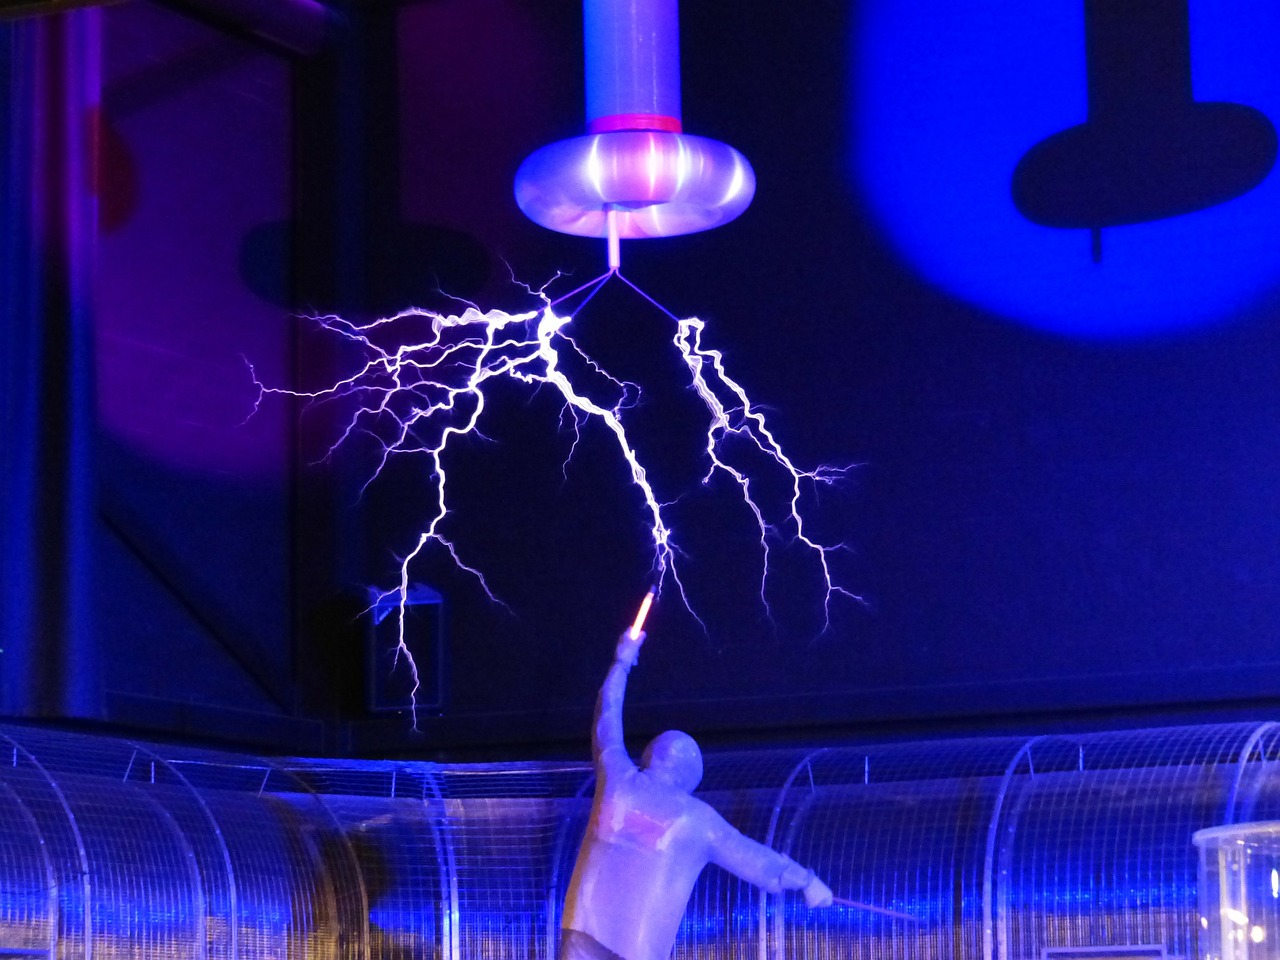 flash tesla coil experiment free photo